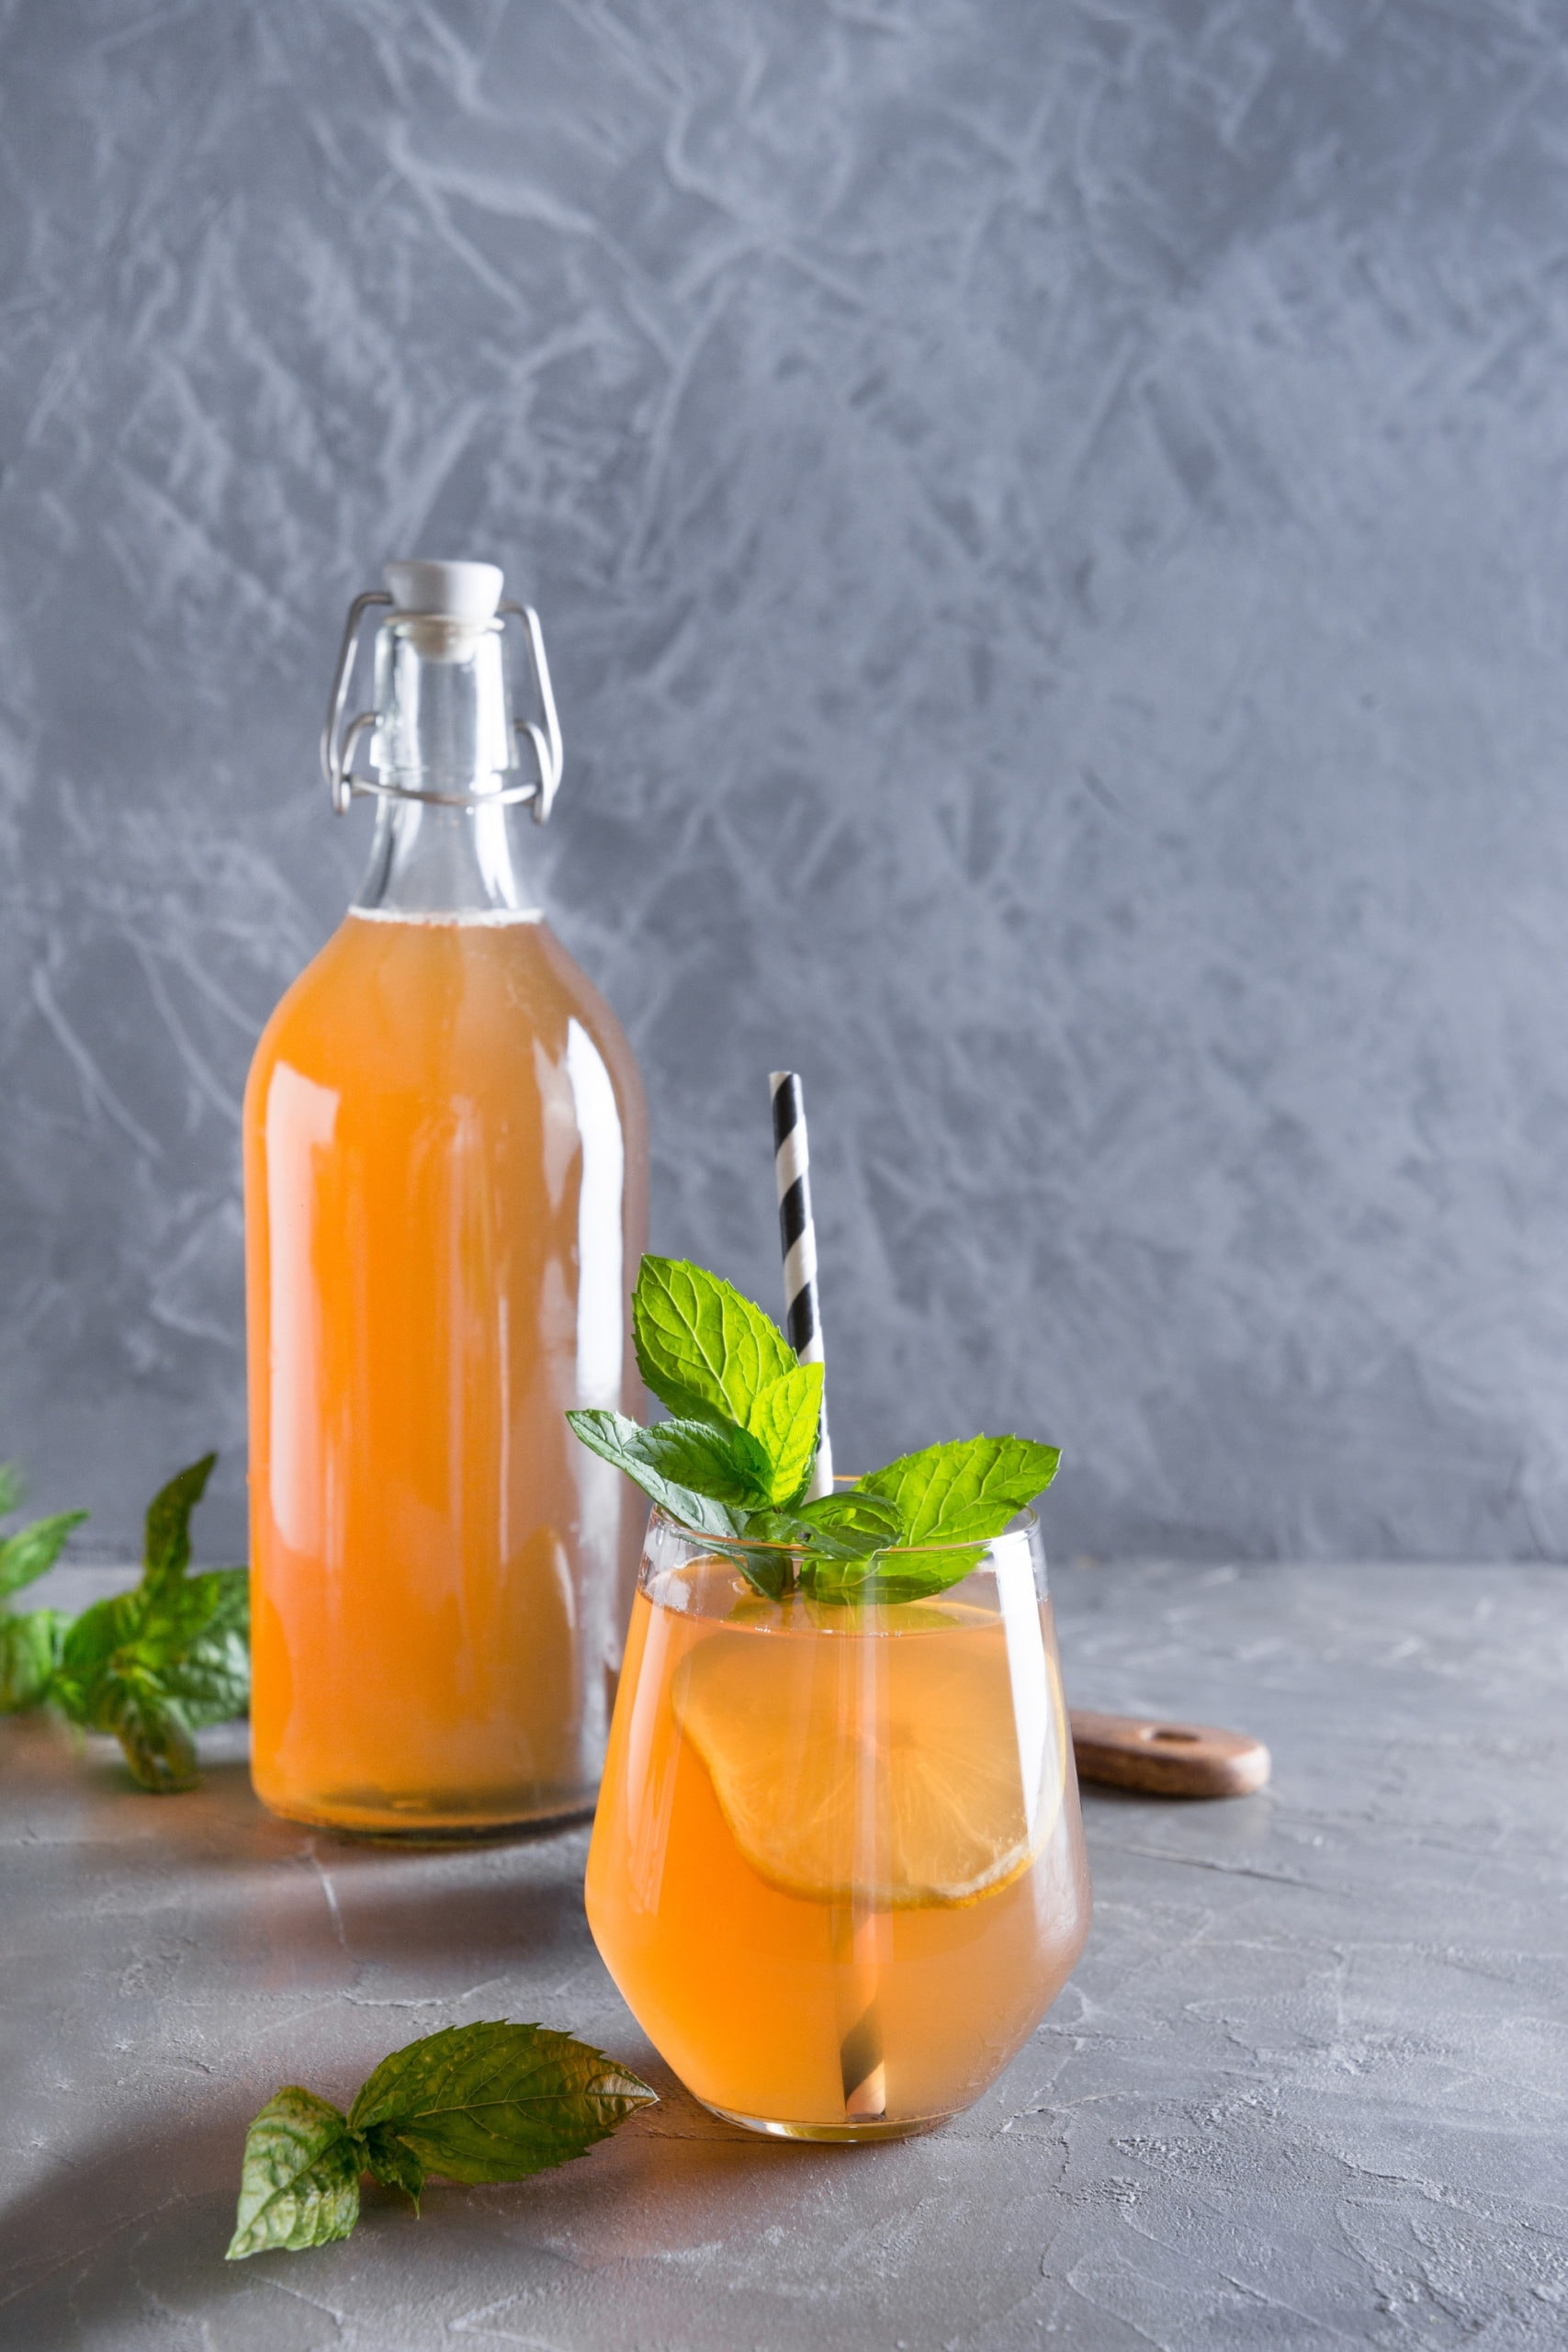 homemade kombucha in a bottle and a glass garnished with lemon, mint, and a black and white straw